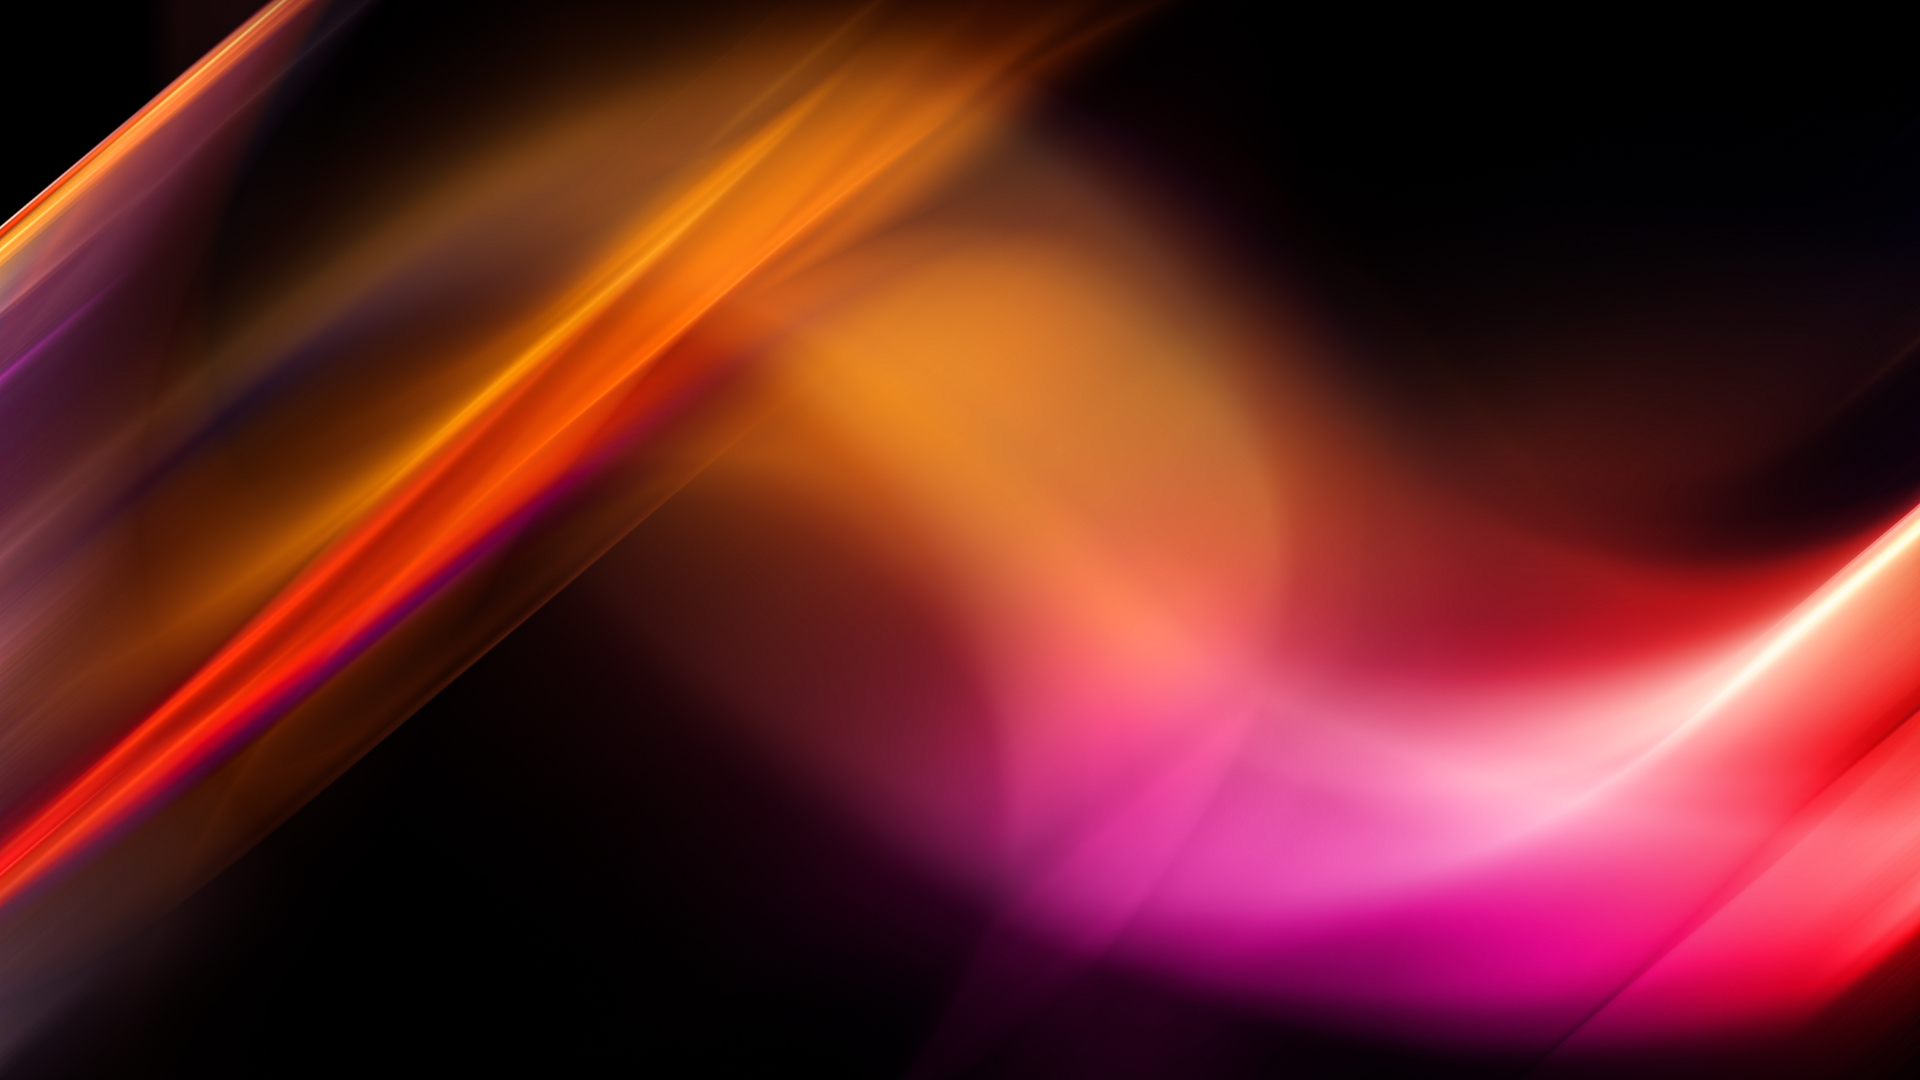 abstract-orange-art-4k-q7.jpg